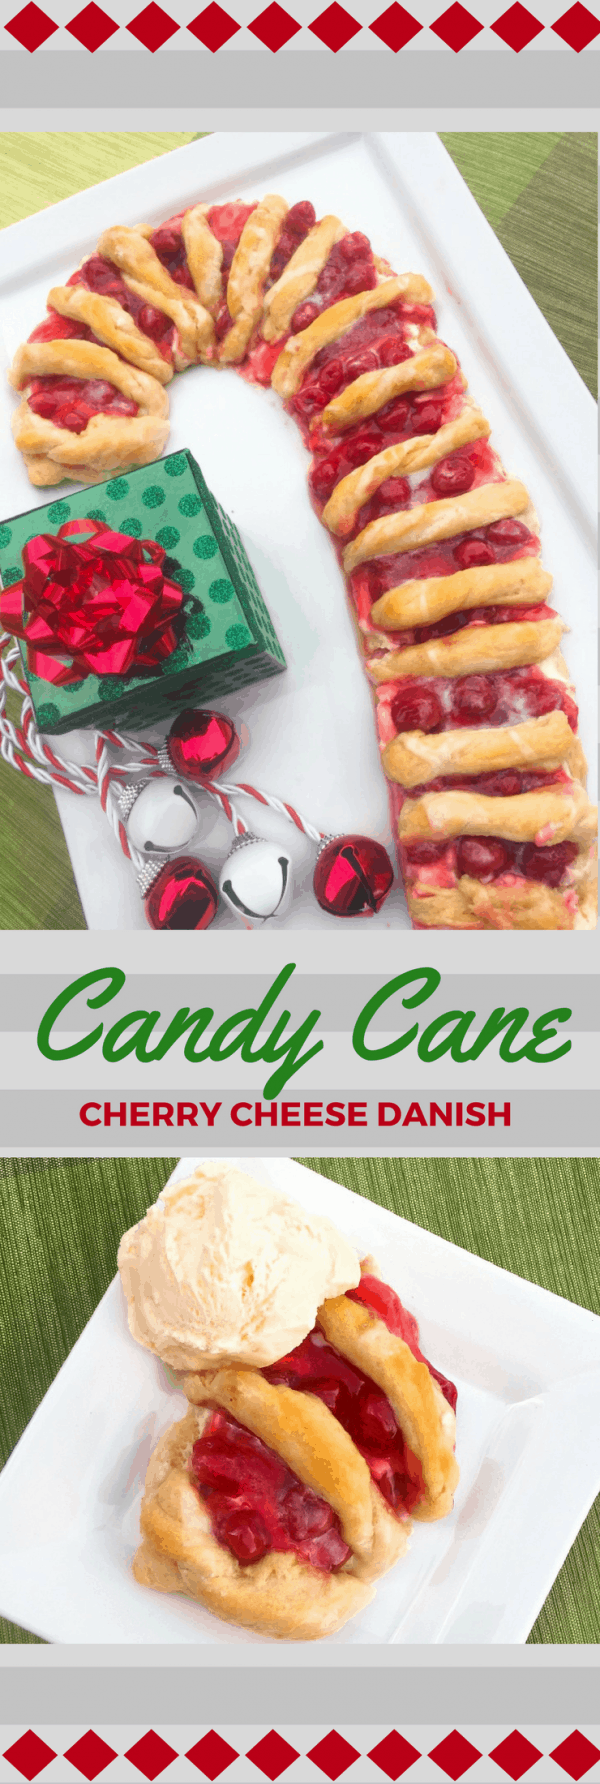 CAndy cane cherry cheese danish